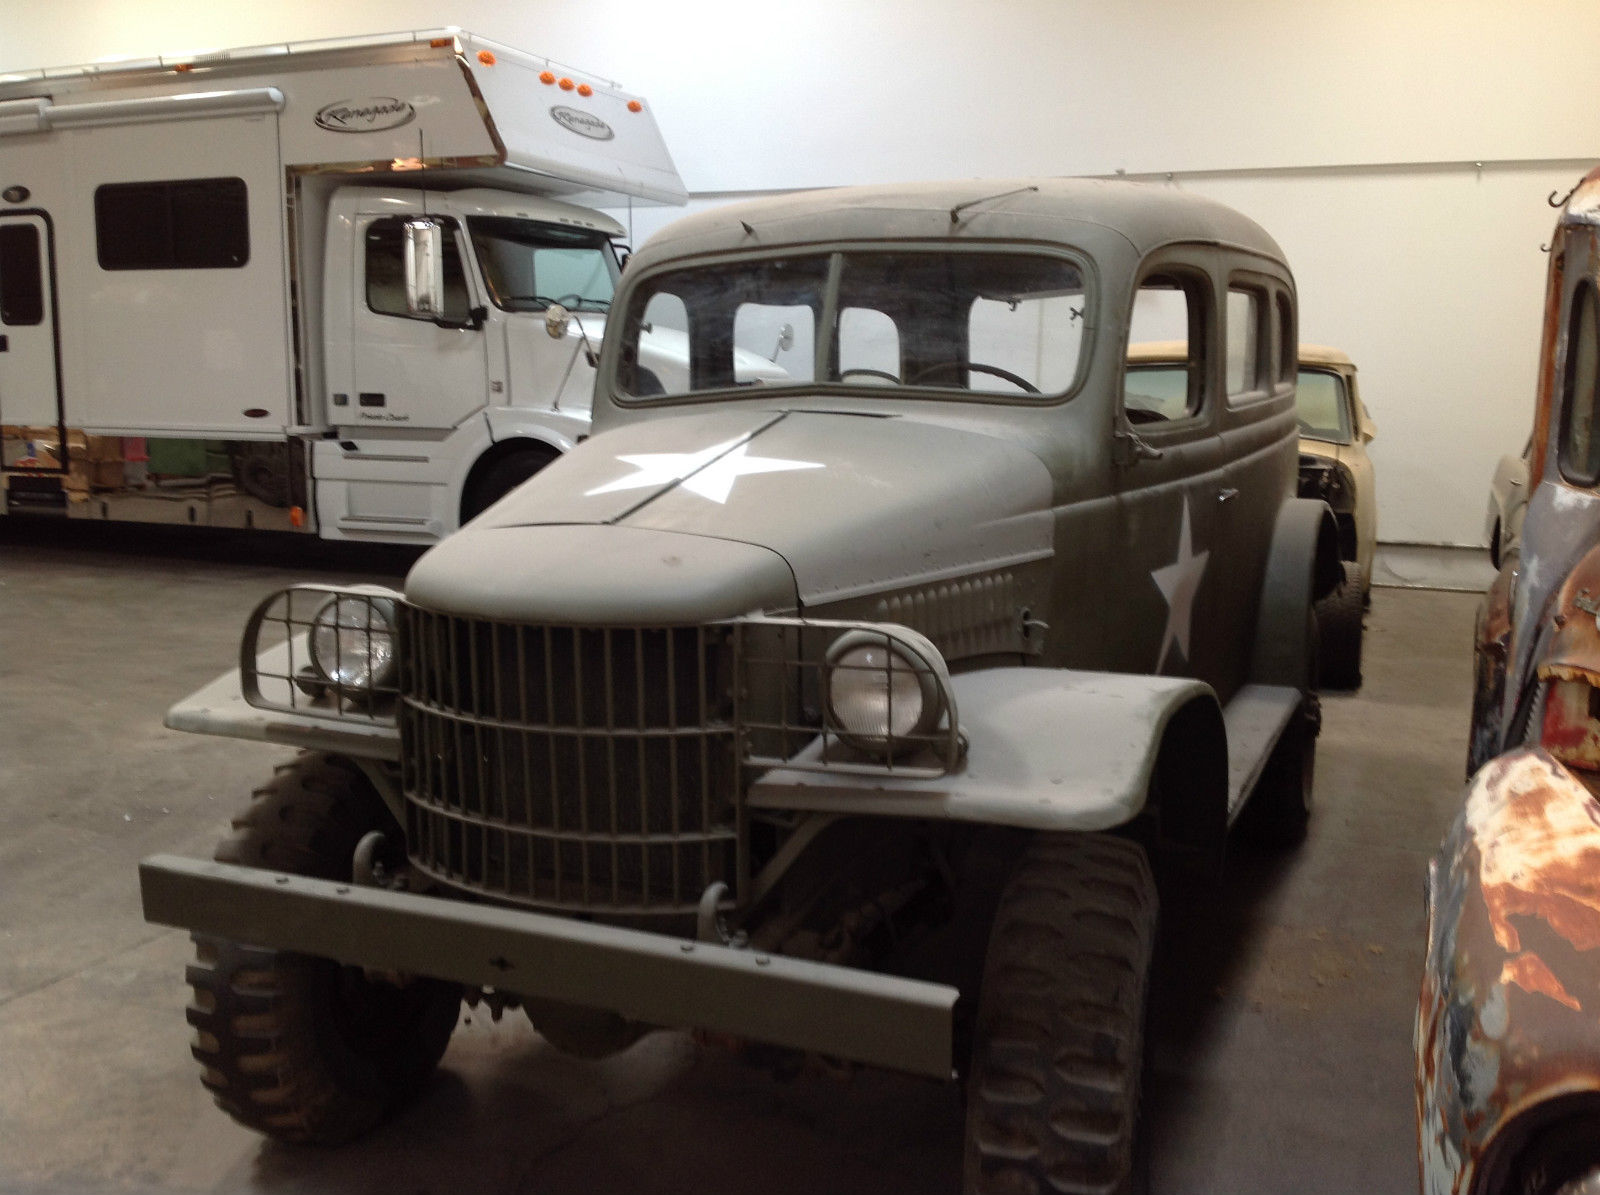 Dodge Power Wagon For Sale >> Unique 1941 Dodge Power Wagon WC US Military - Classic Dodge Power Wagon 1941 for sale